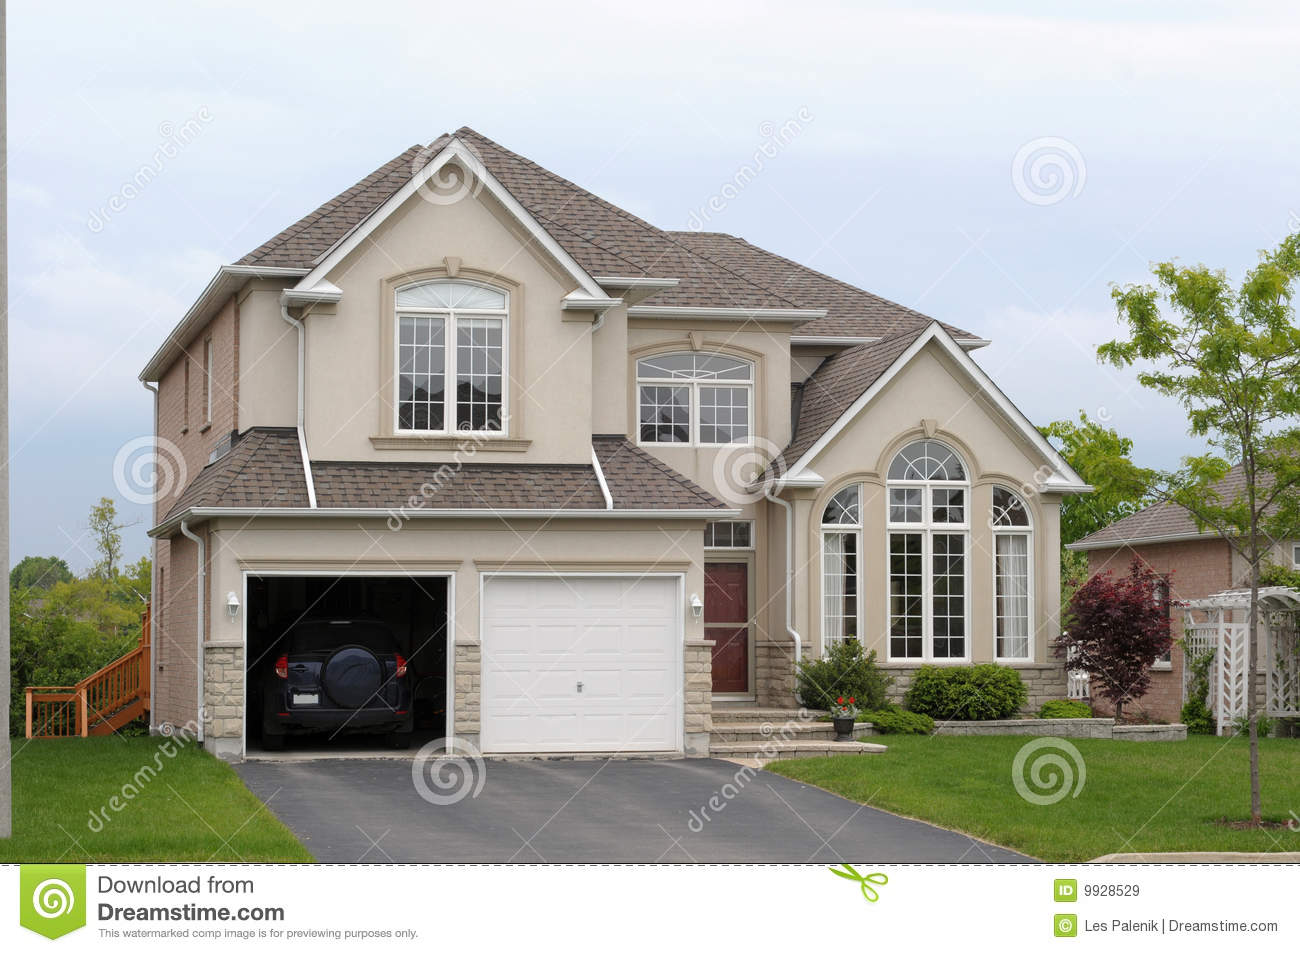 New house with a double garage royalty free stock images for New house images